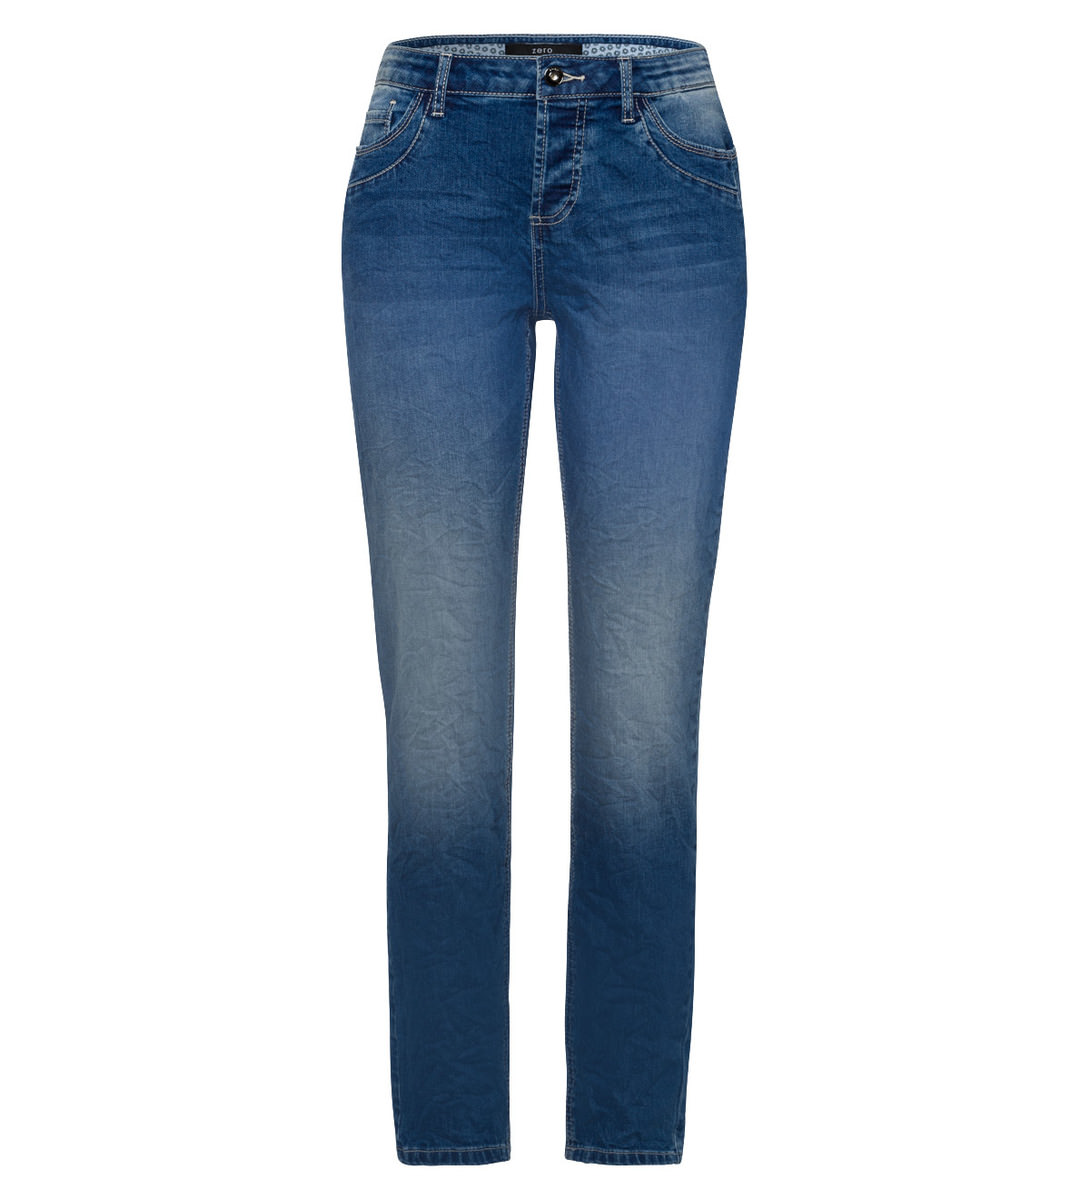 Jeans im Washed-out-Style 30 Inch in mid blue washed